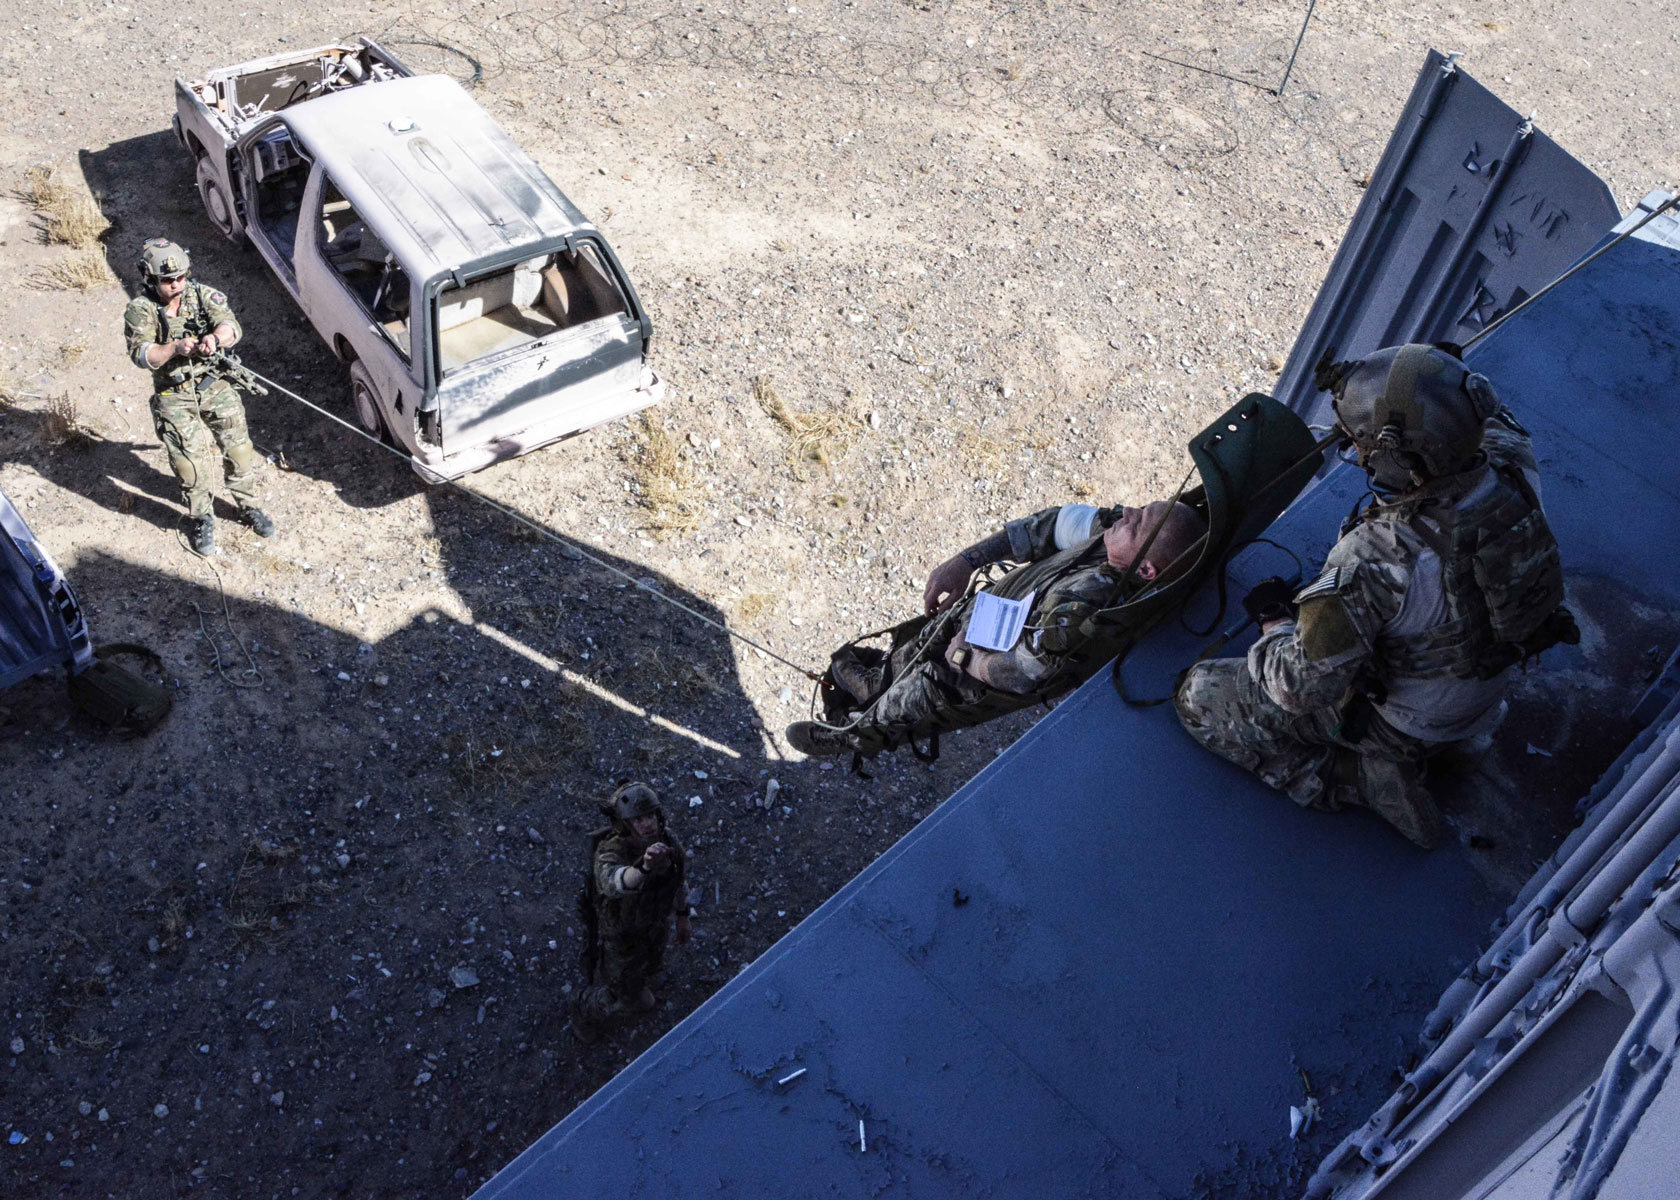 Green Berets from 10th Special Forces Group (Airborne) and a U.S. Air Force Pararescueman lower a simulated casualty during a training exercise.